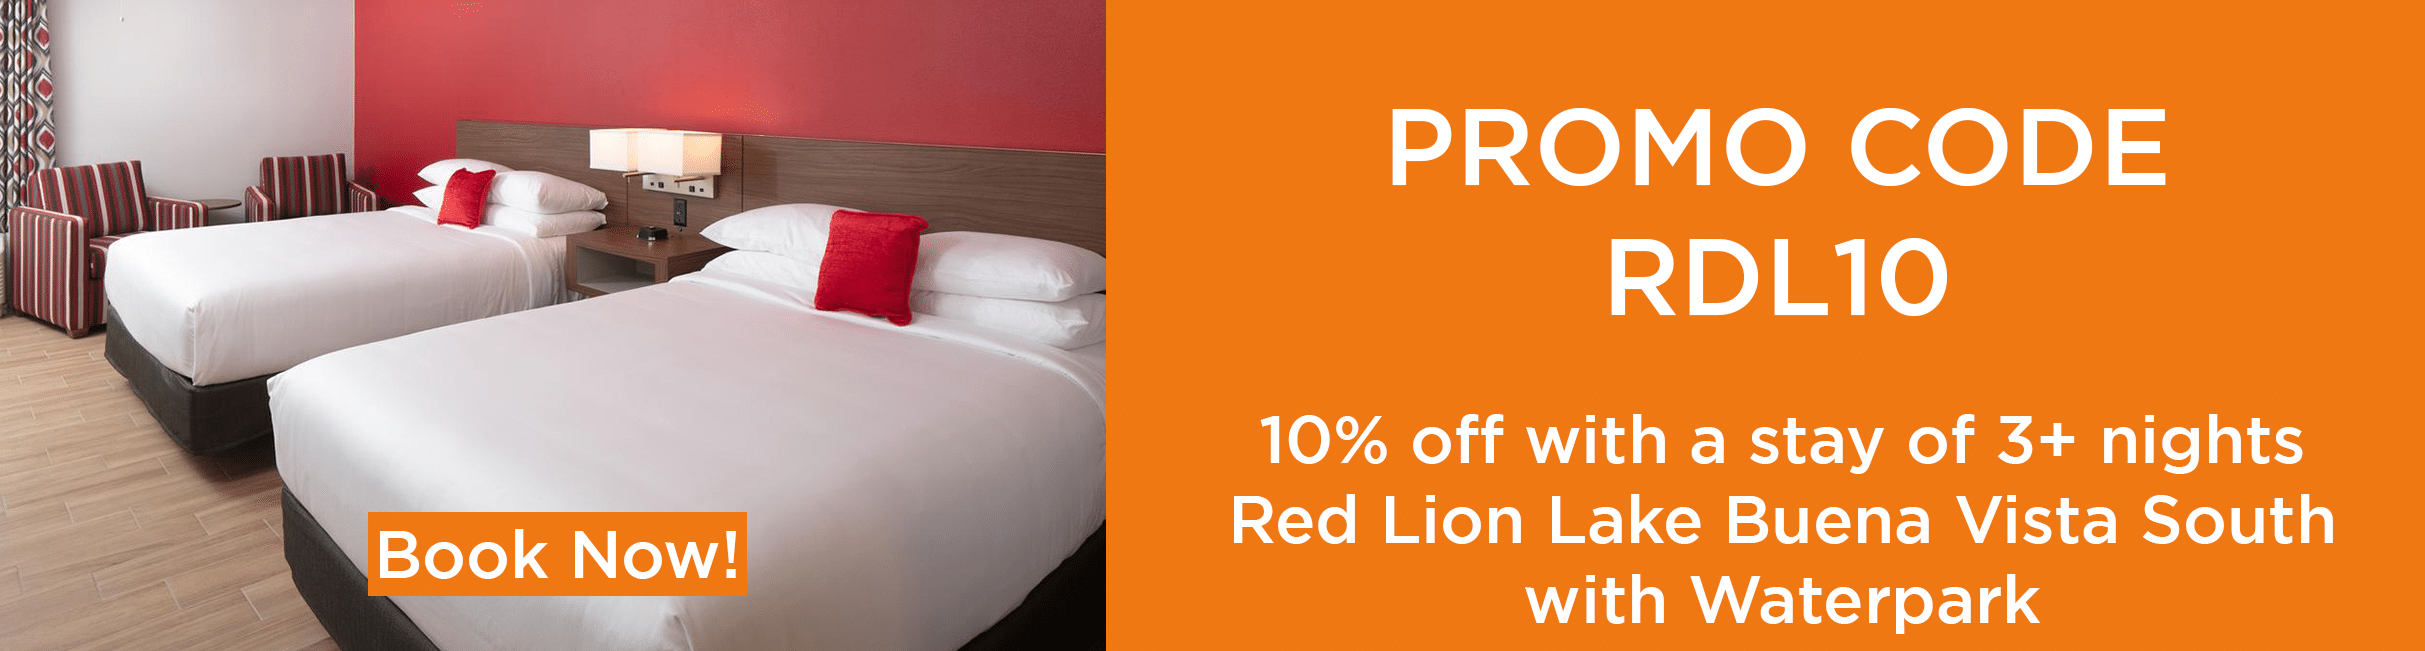 promo red lion-Orlando vacation discounts